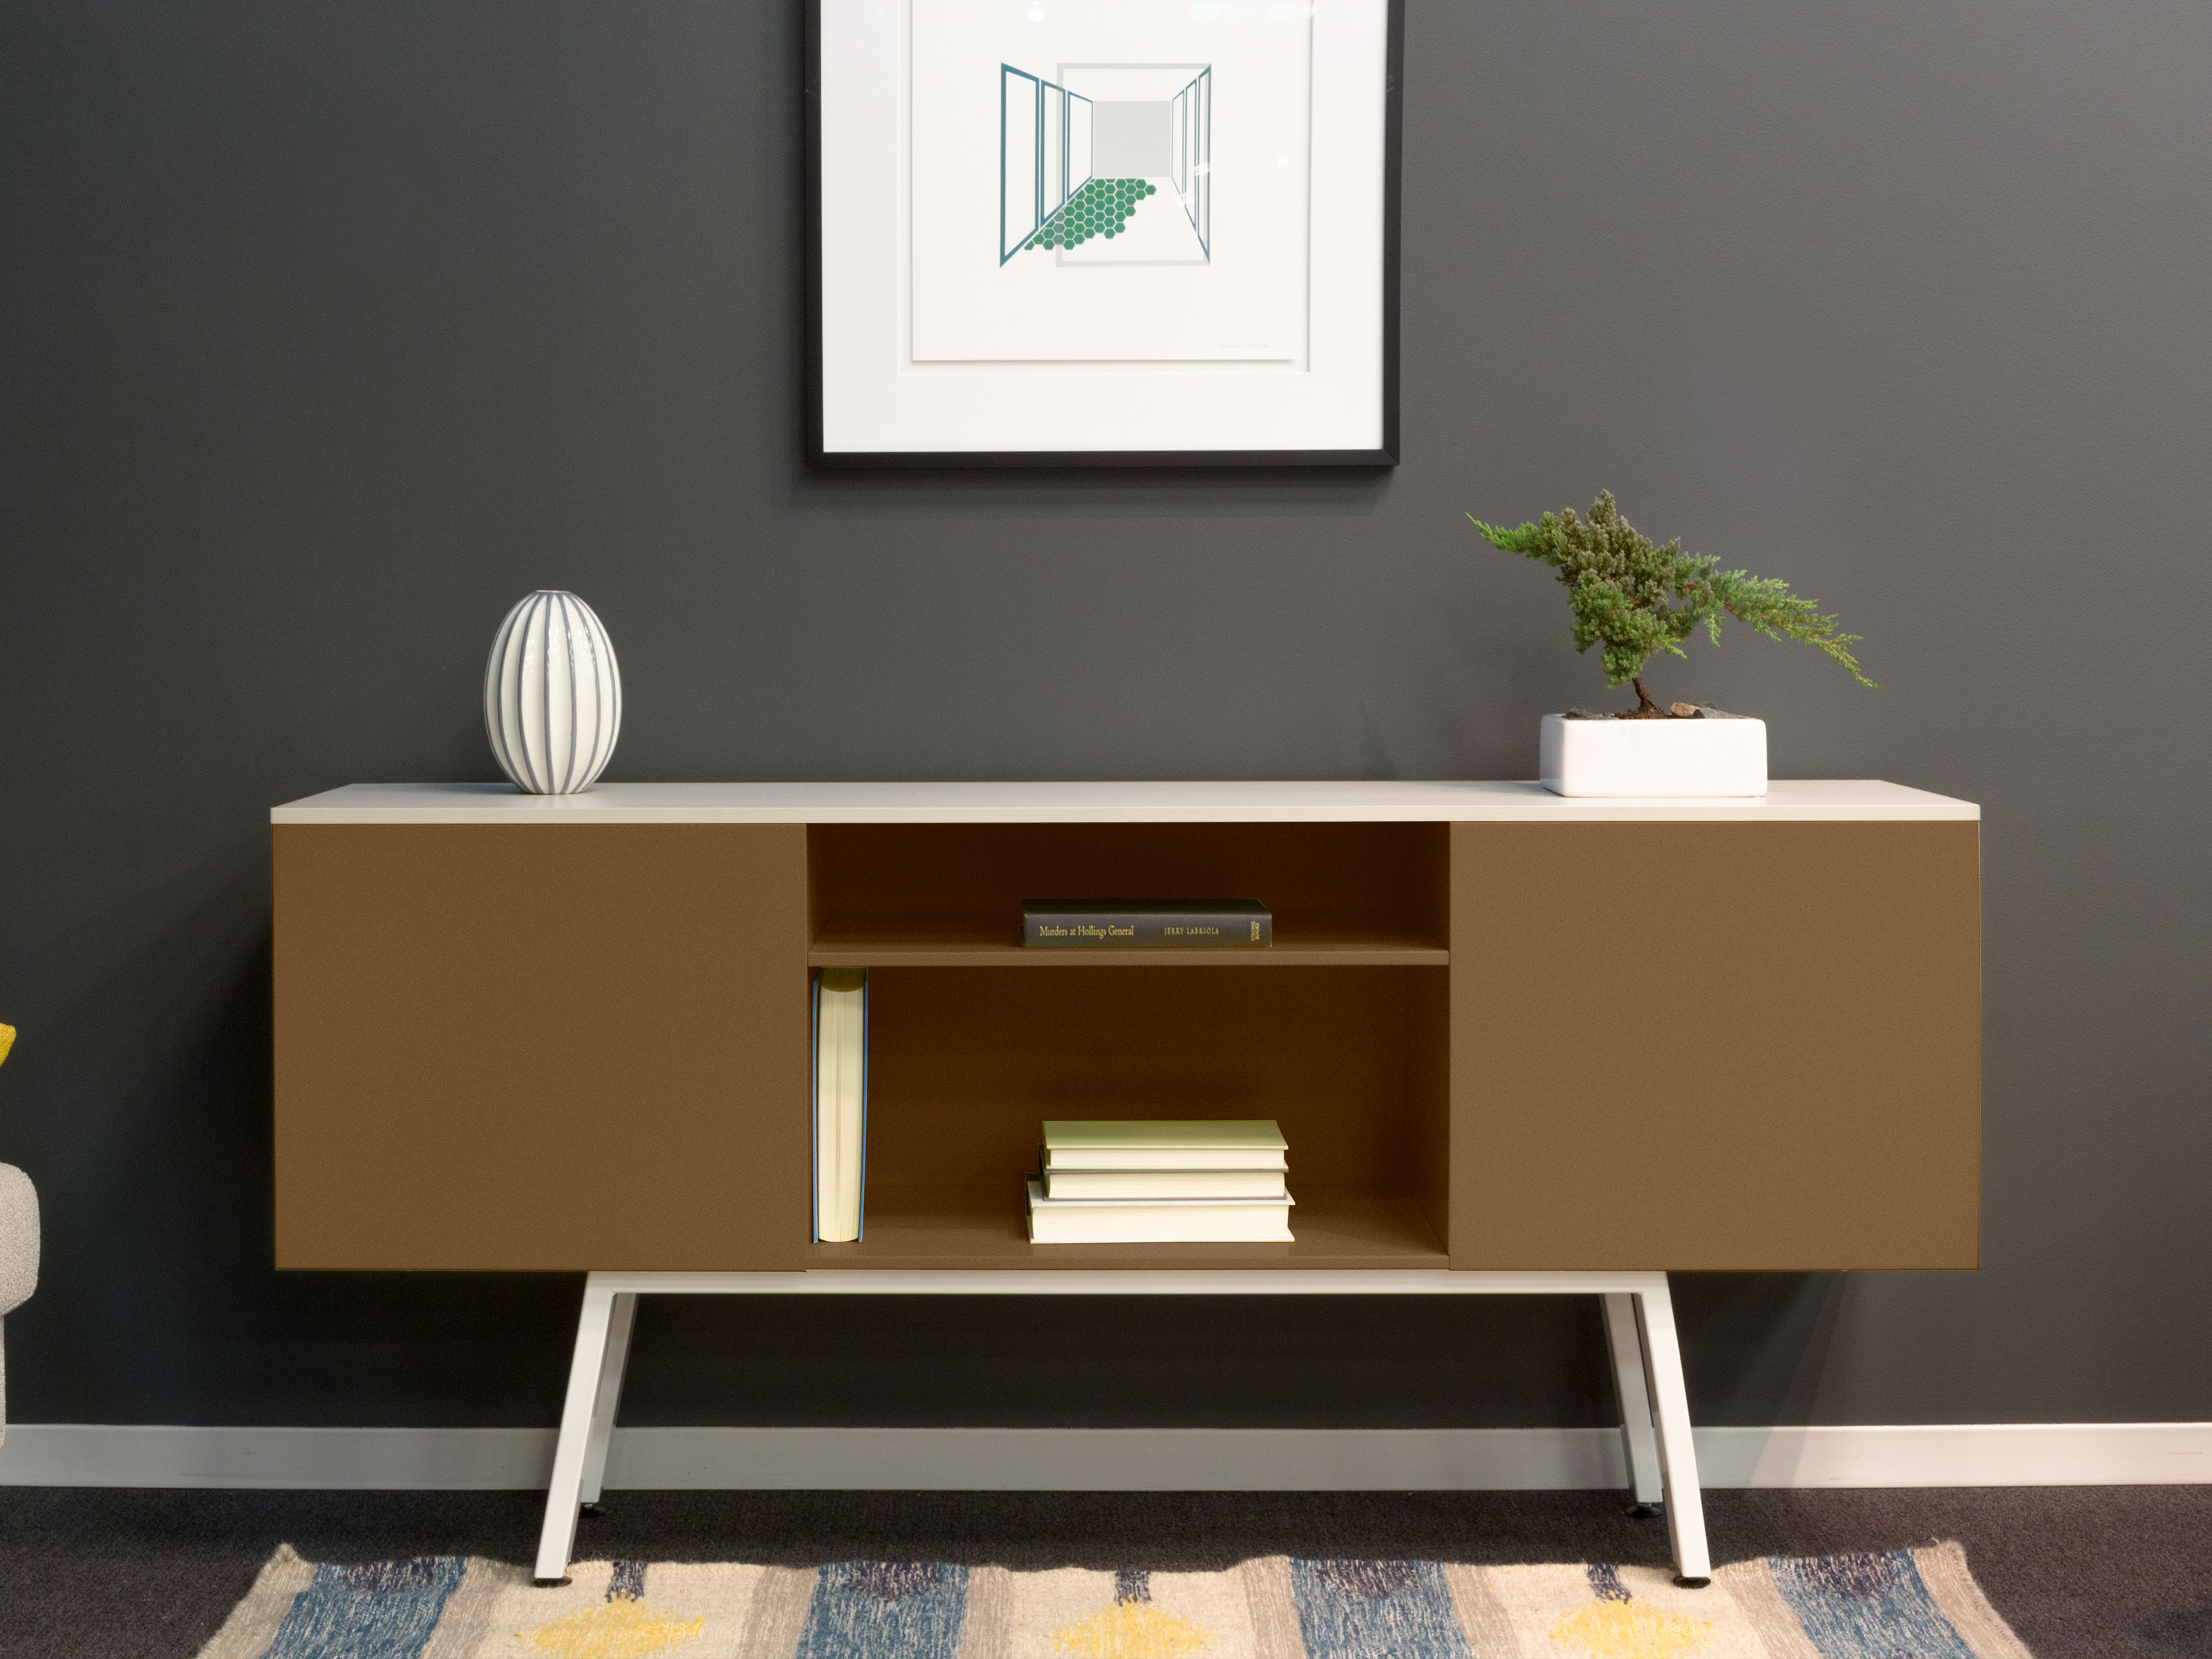 La Credenza En Español : Office storage solutions hospital classroom steelcase